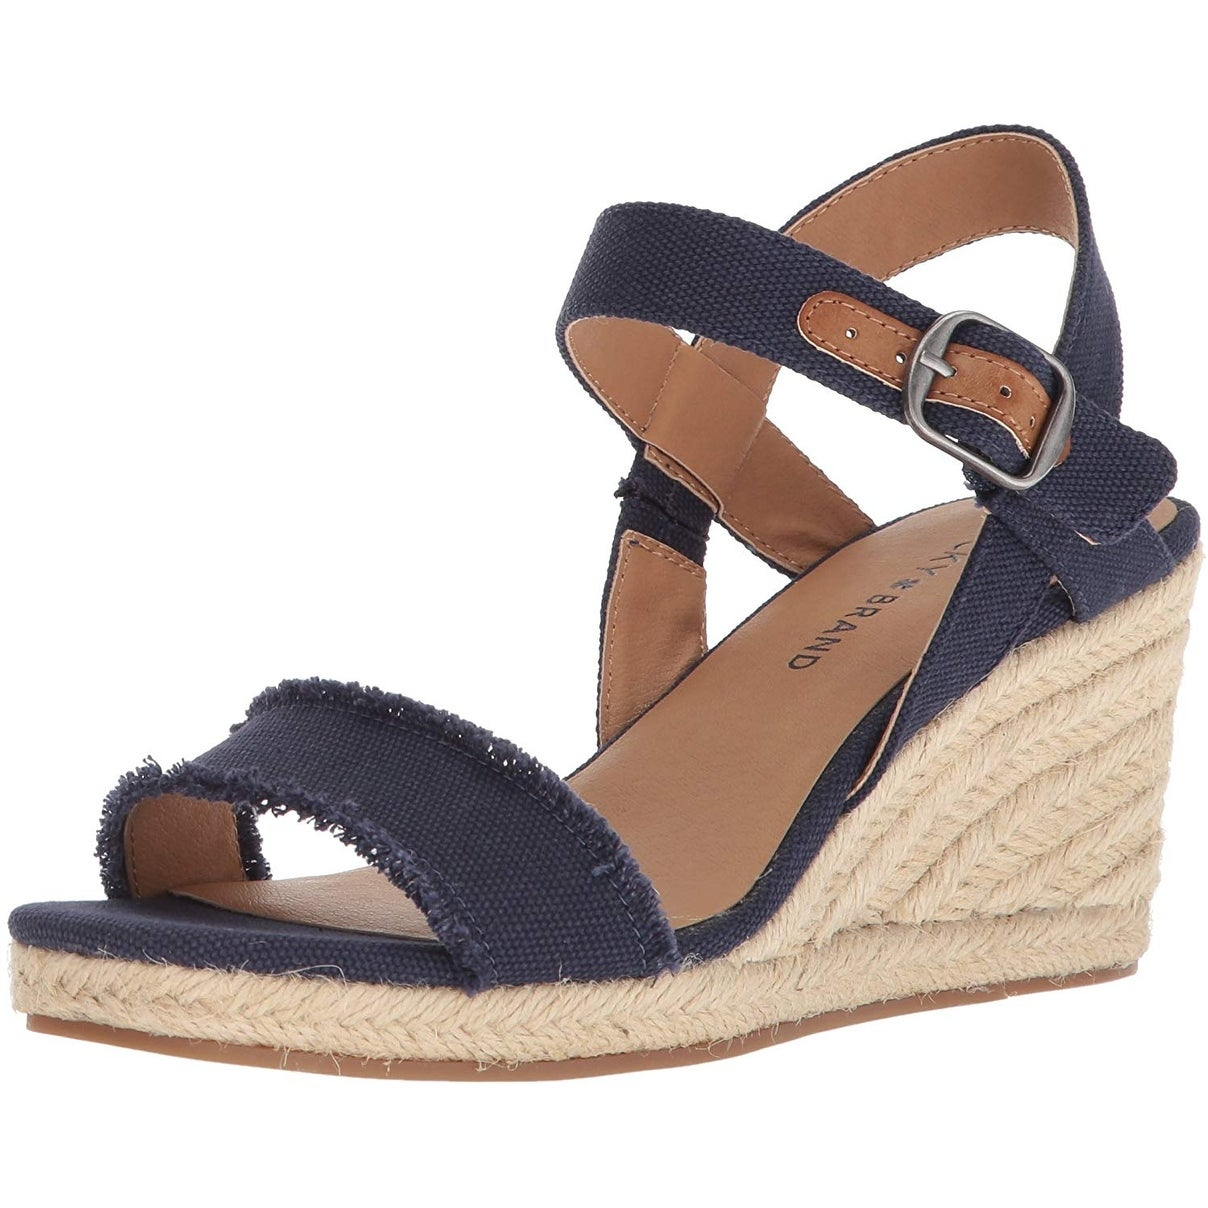 37958570bf Blue Lucky Brand Women's Shoes | Find Great Shoes Deals Shopping at  Overstock